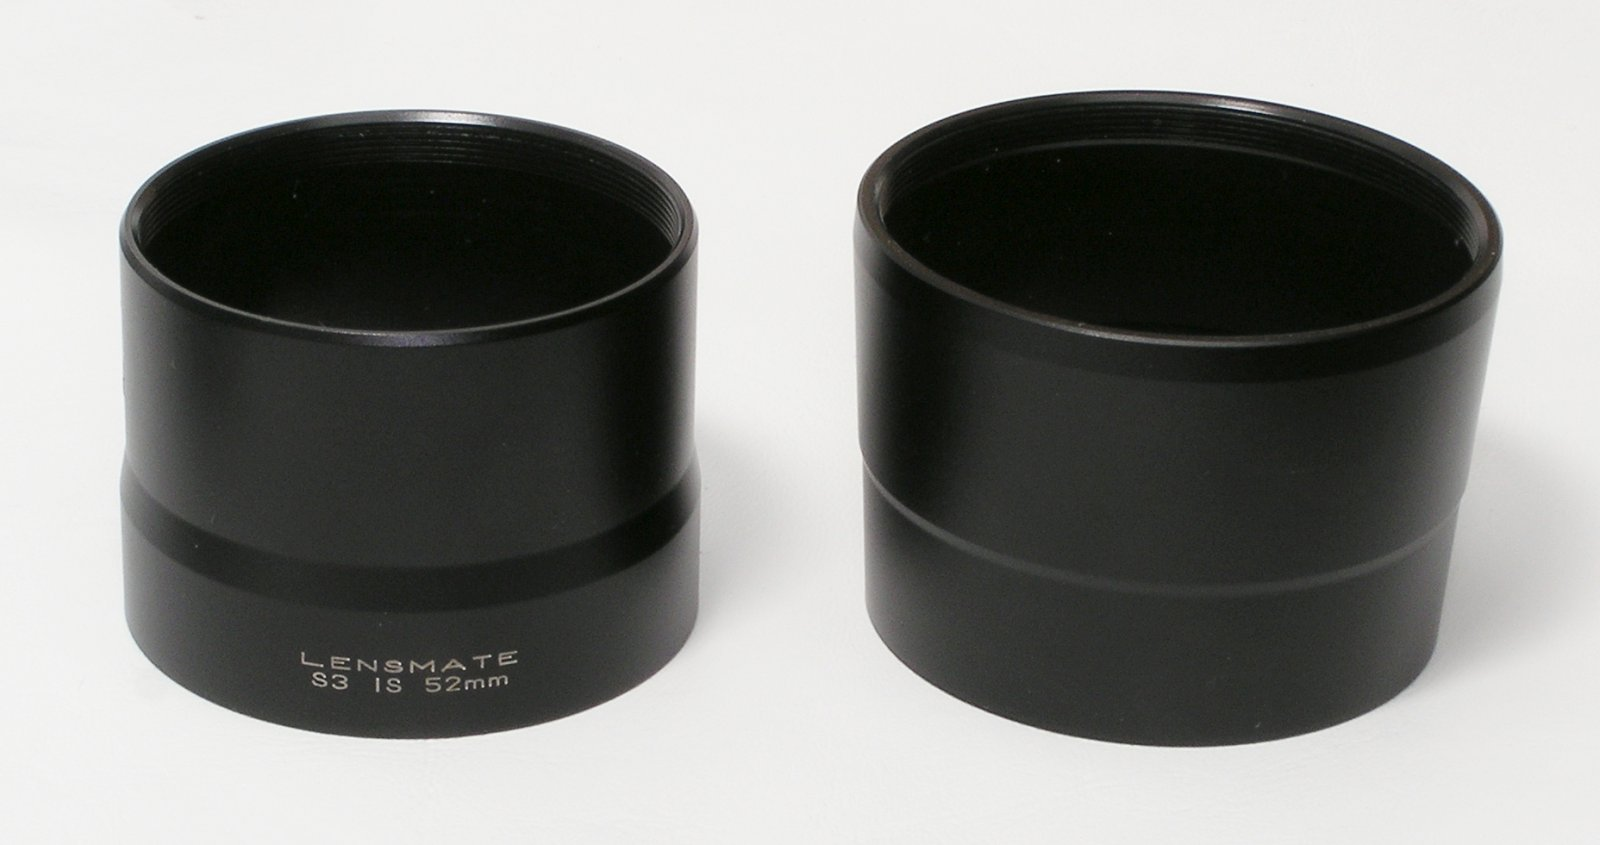 LensMate 52mm Adapter and LensMate 58mm Adapter